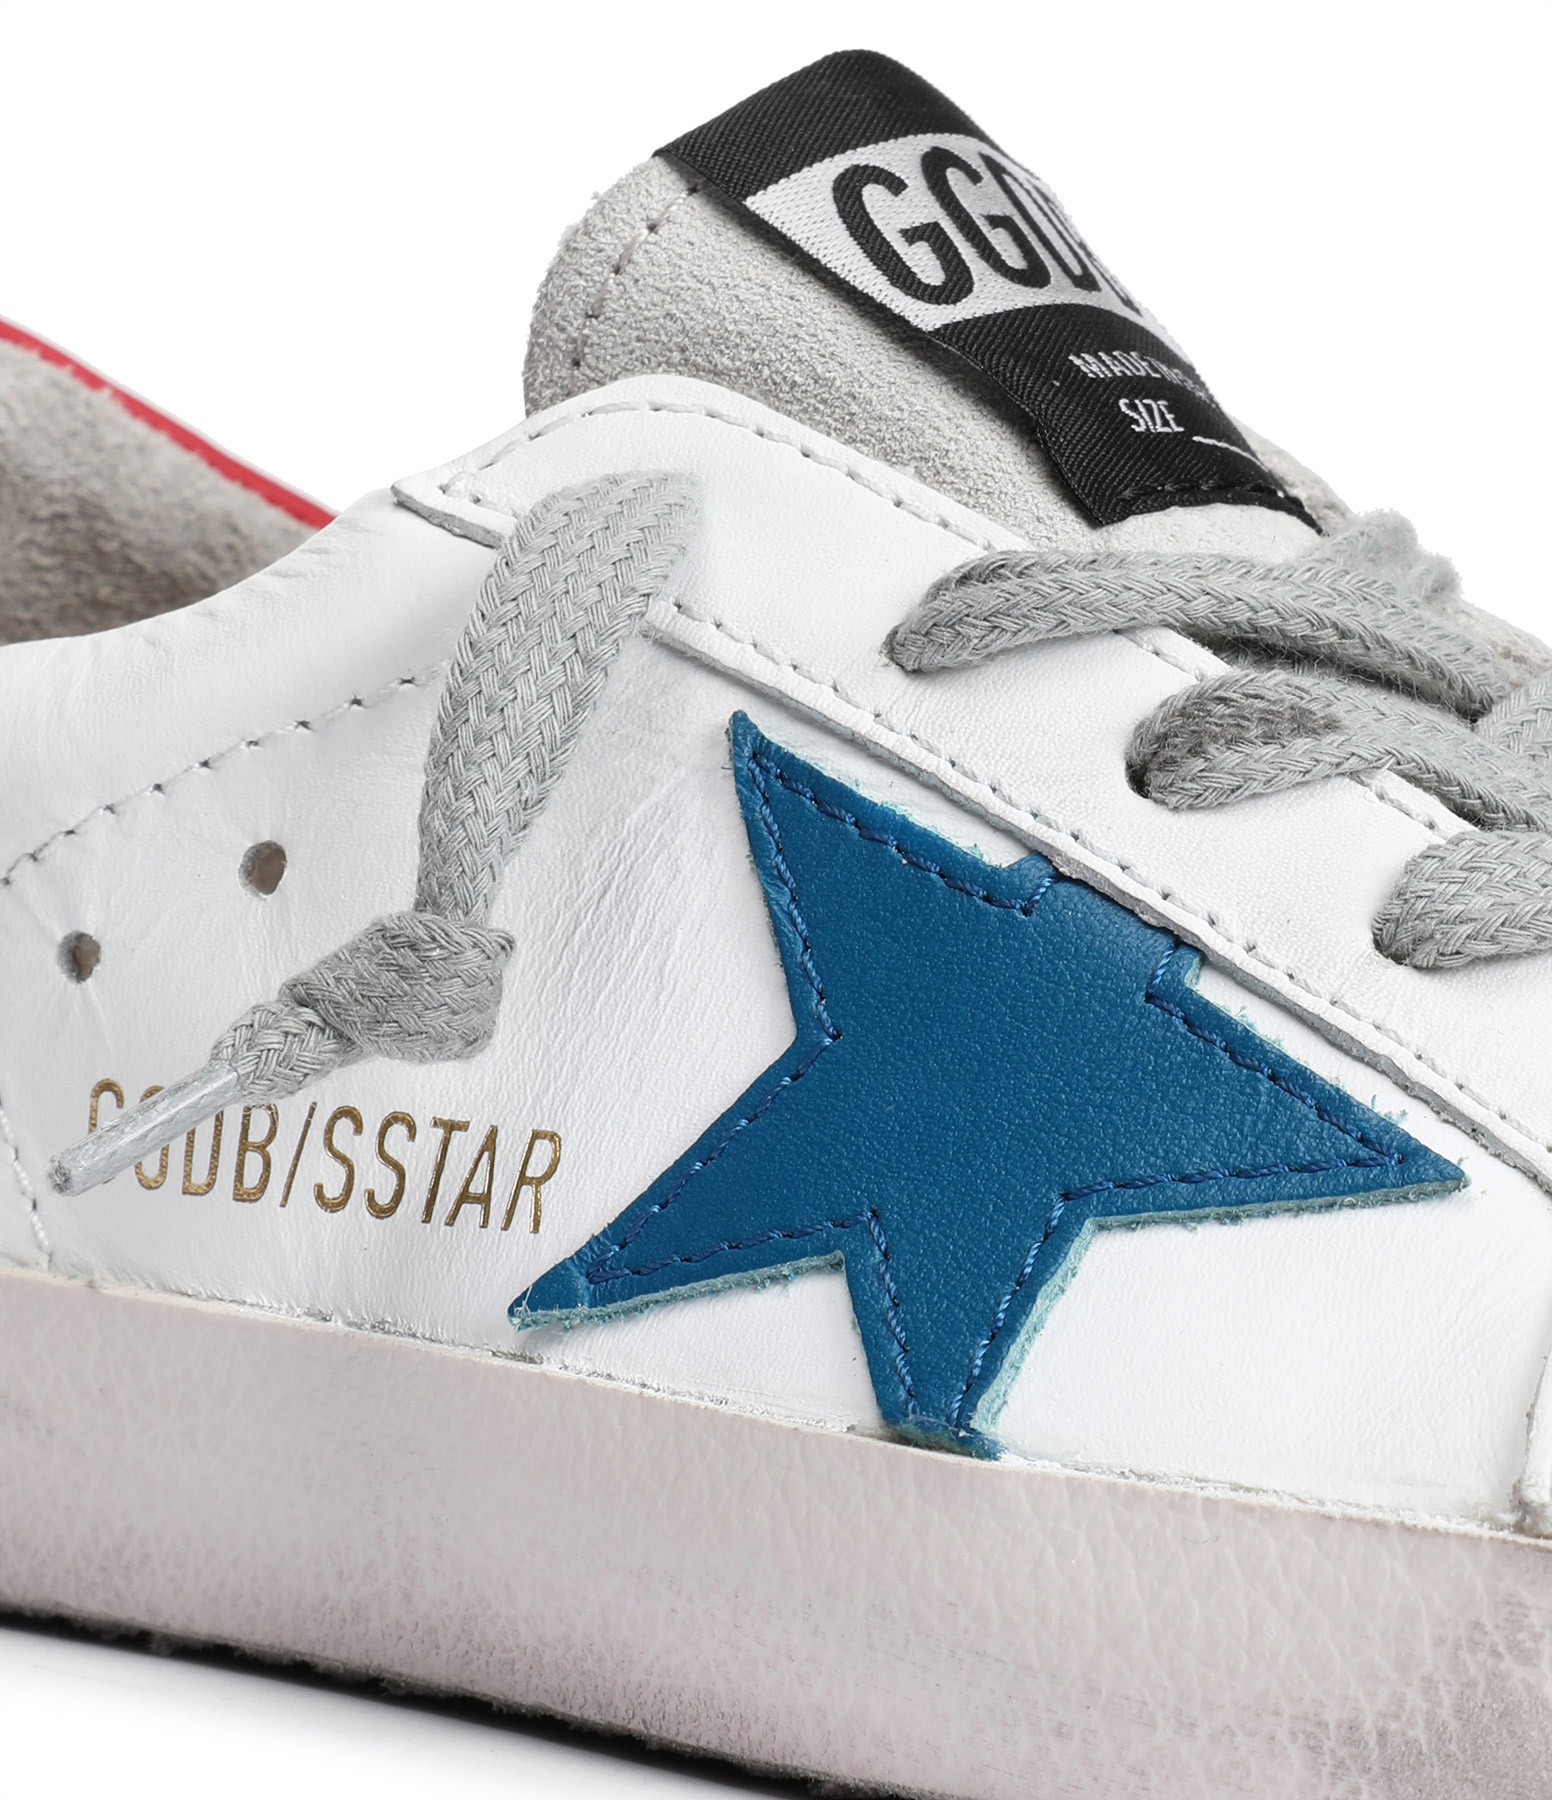 GOLDEN GOOSE - Baskets Enfant Superstar Cuir Blanc Rouge Bleu